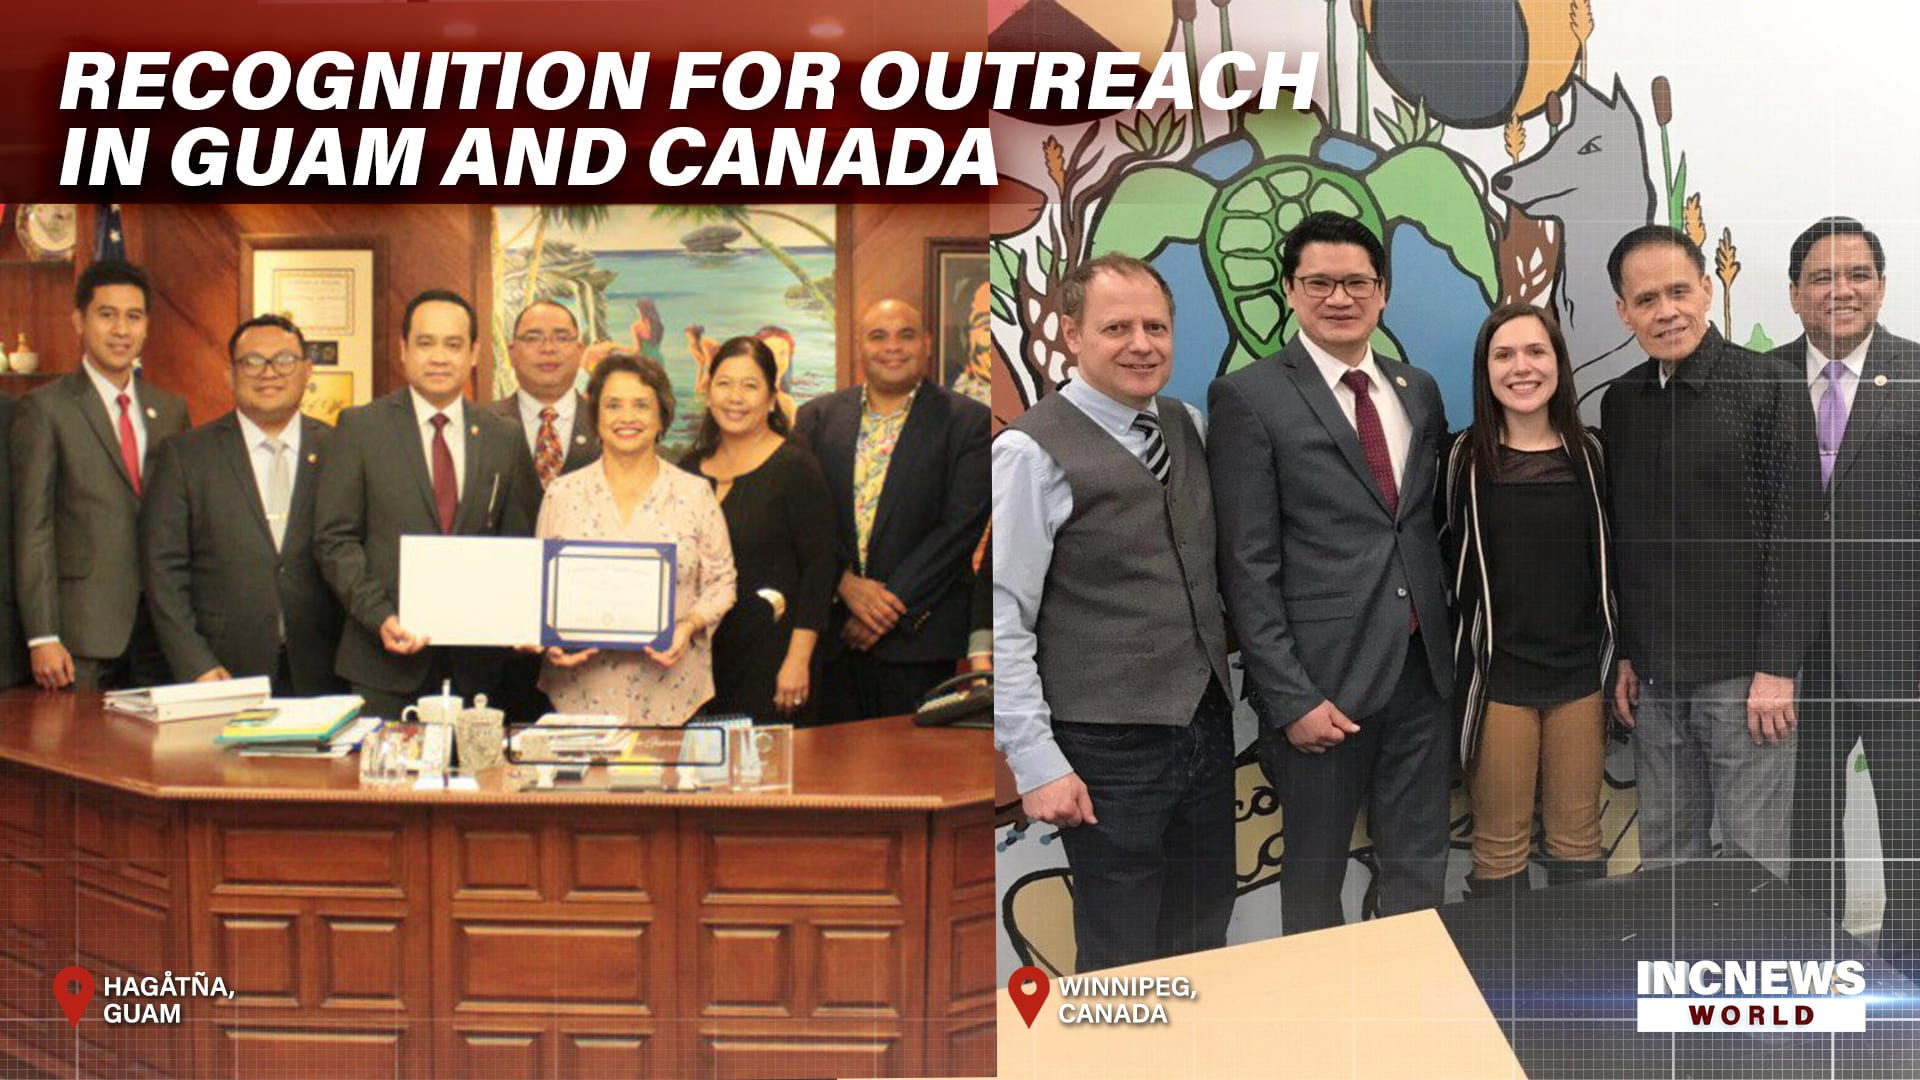 Recognition for Outreach in Guam and Canada